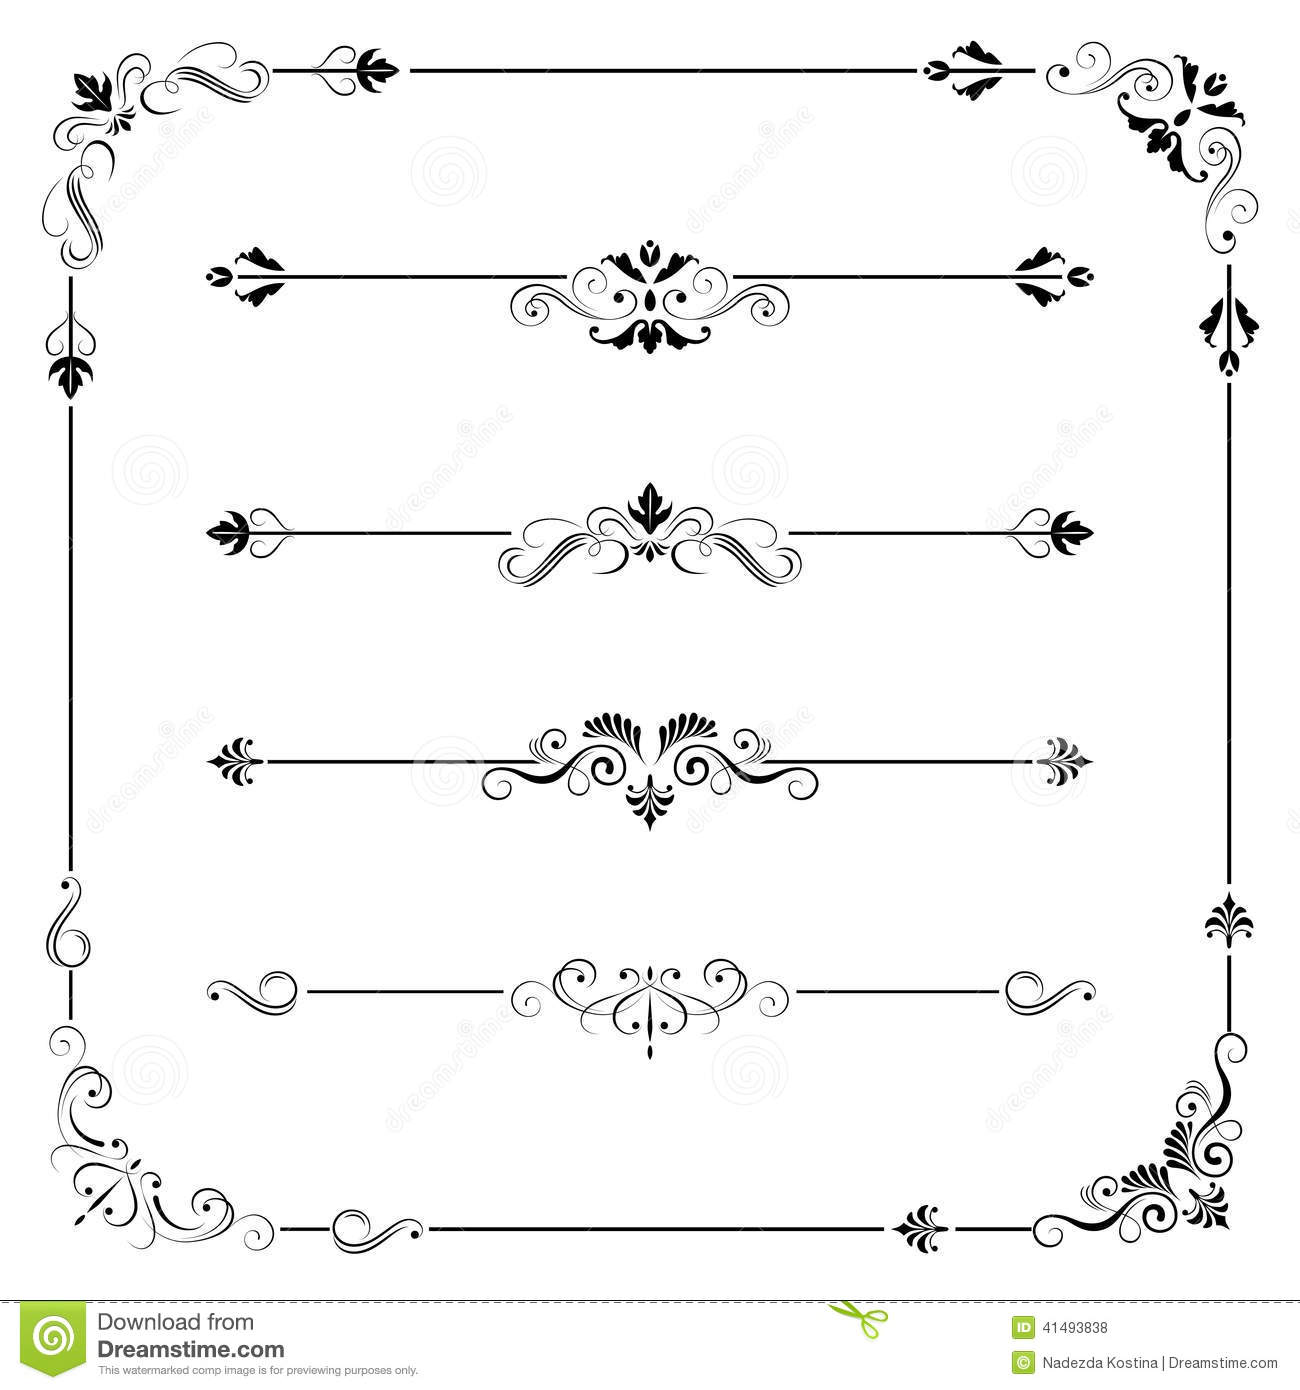 14 Simple Vintage Border Vector Images - Vintage Vector ...